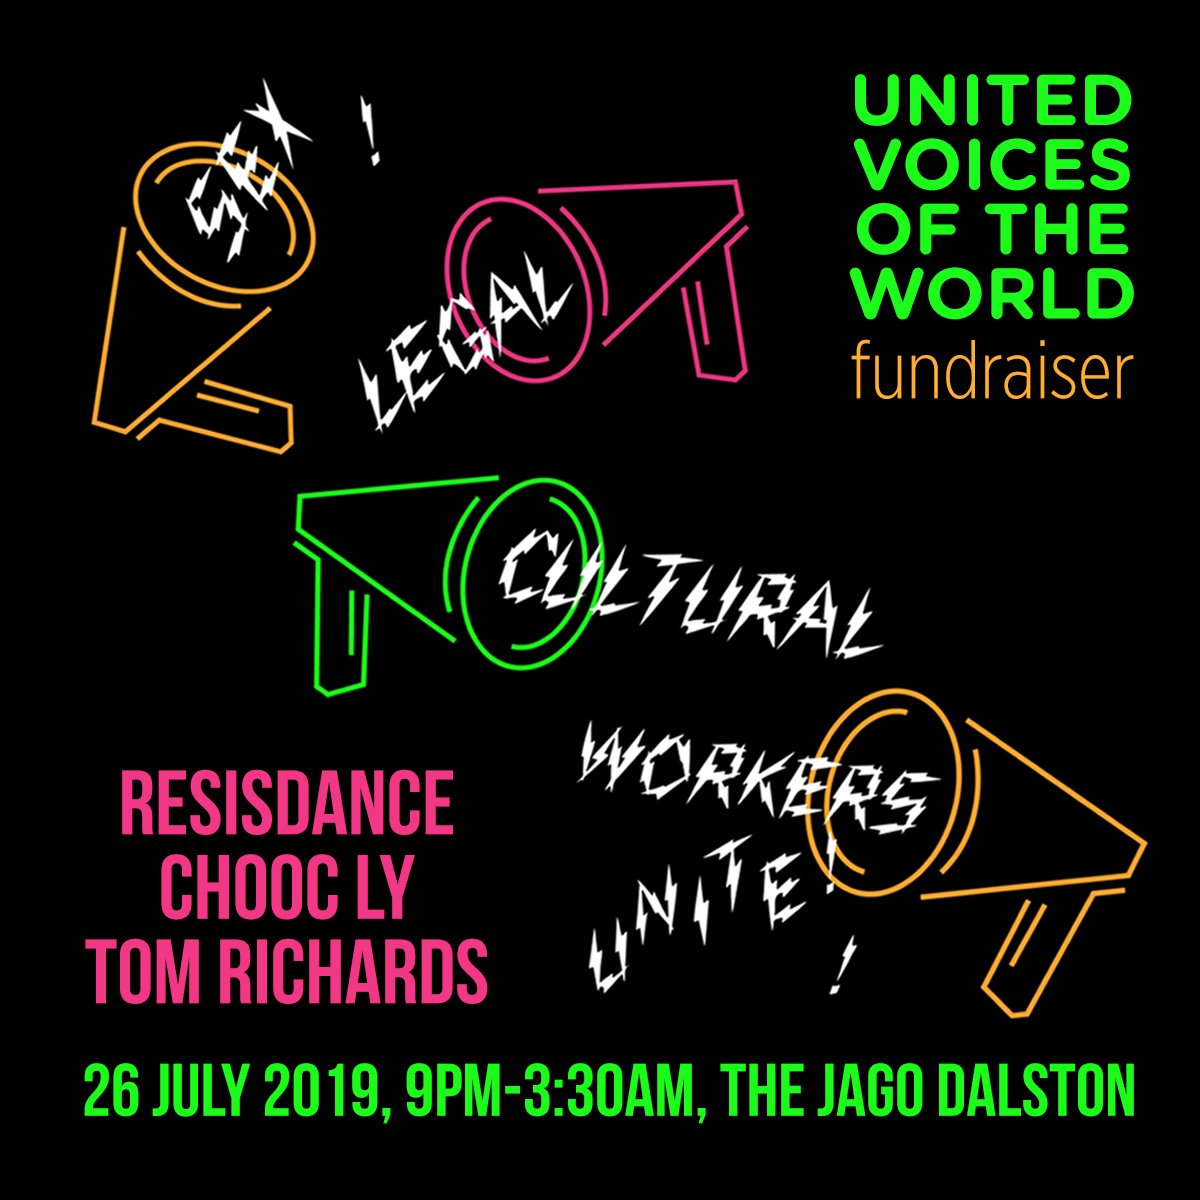 Comrades @UVWunion are launching 3 new members groups with a wicked party. Well be there to support sex + legal + cultural workers, dance to @ResisDanceLdn @ChoocLy & watch performances by unionised strippers! facebook.com/events/1721013… w @LSWUnited @unitedstripper @evening_class